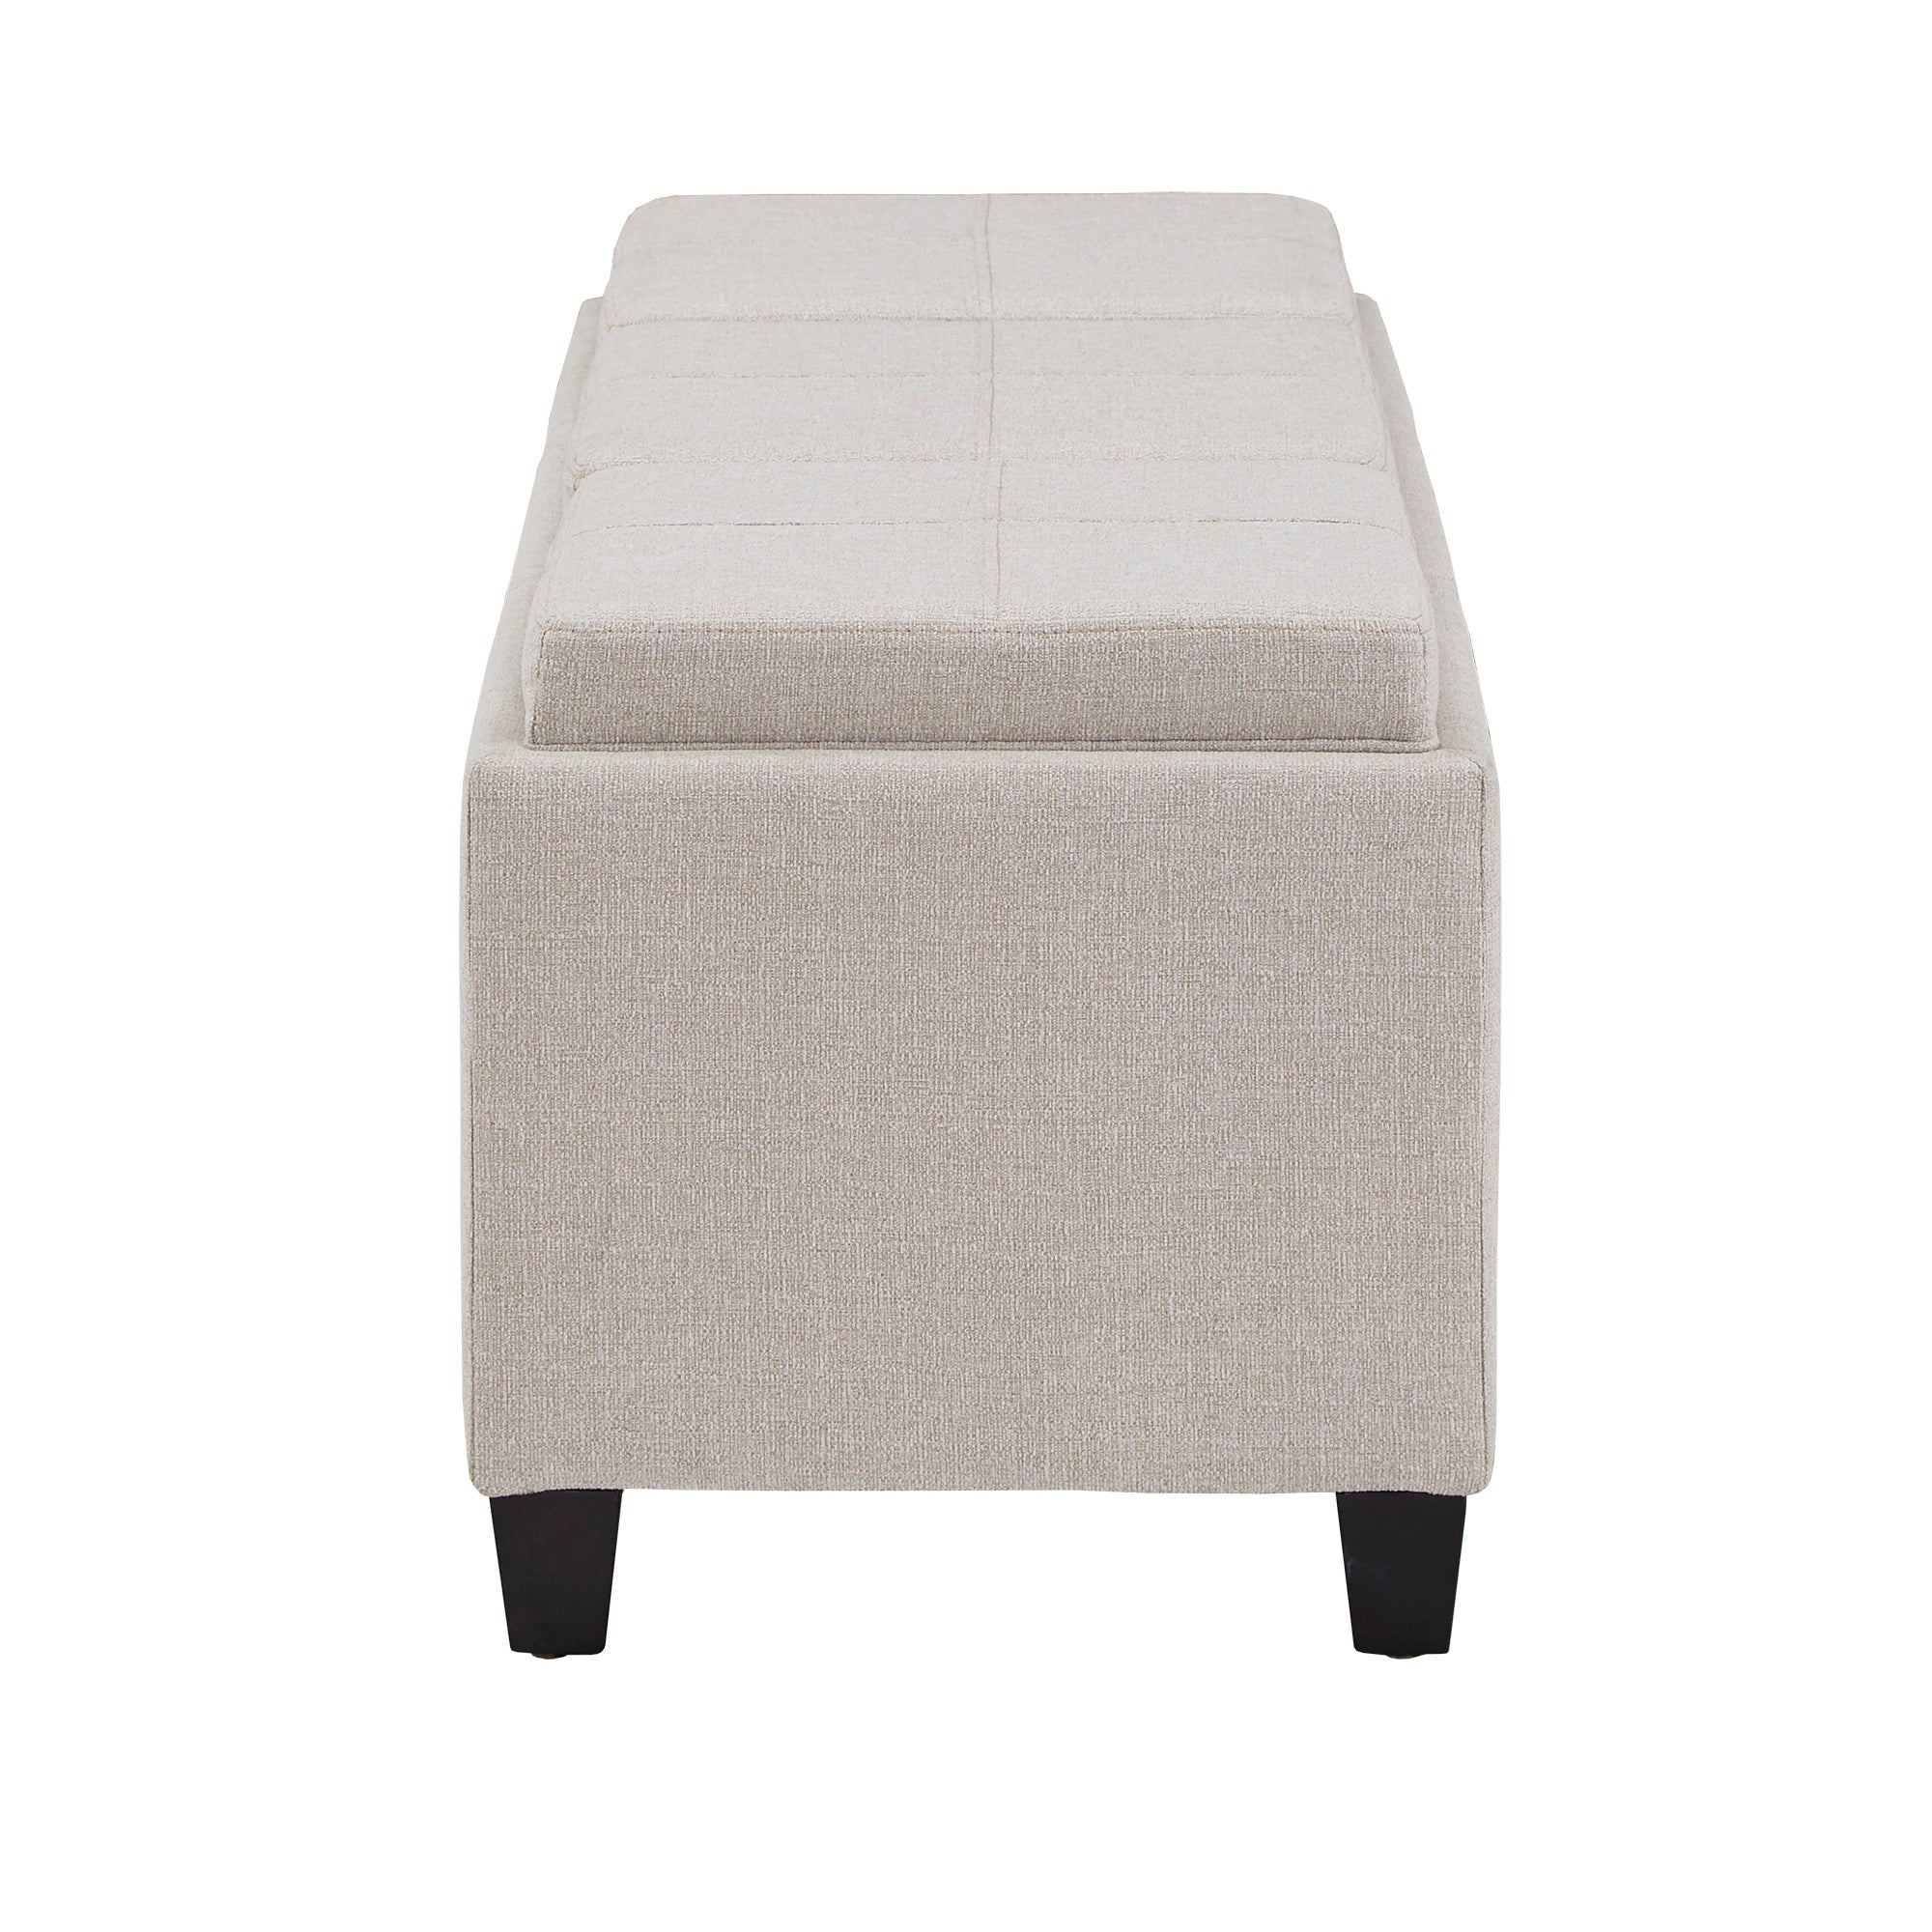 Heathered Weave Storage Bench with Trays